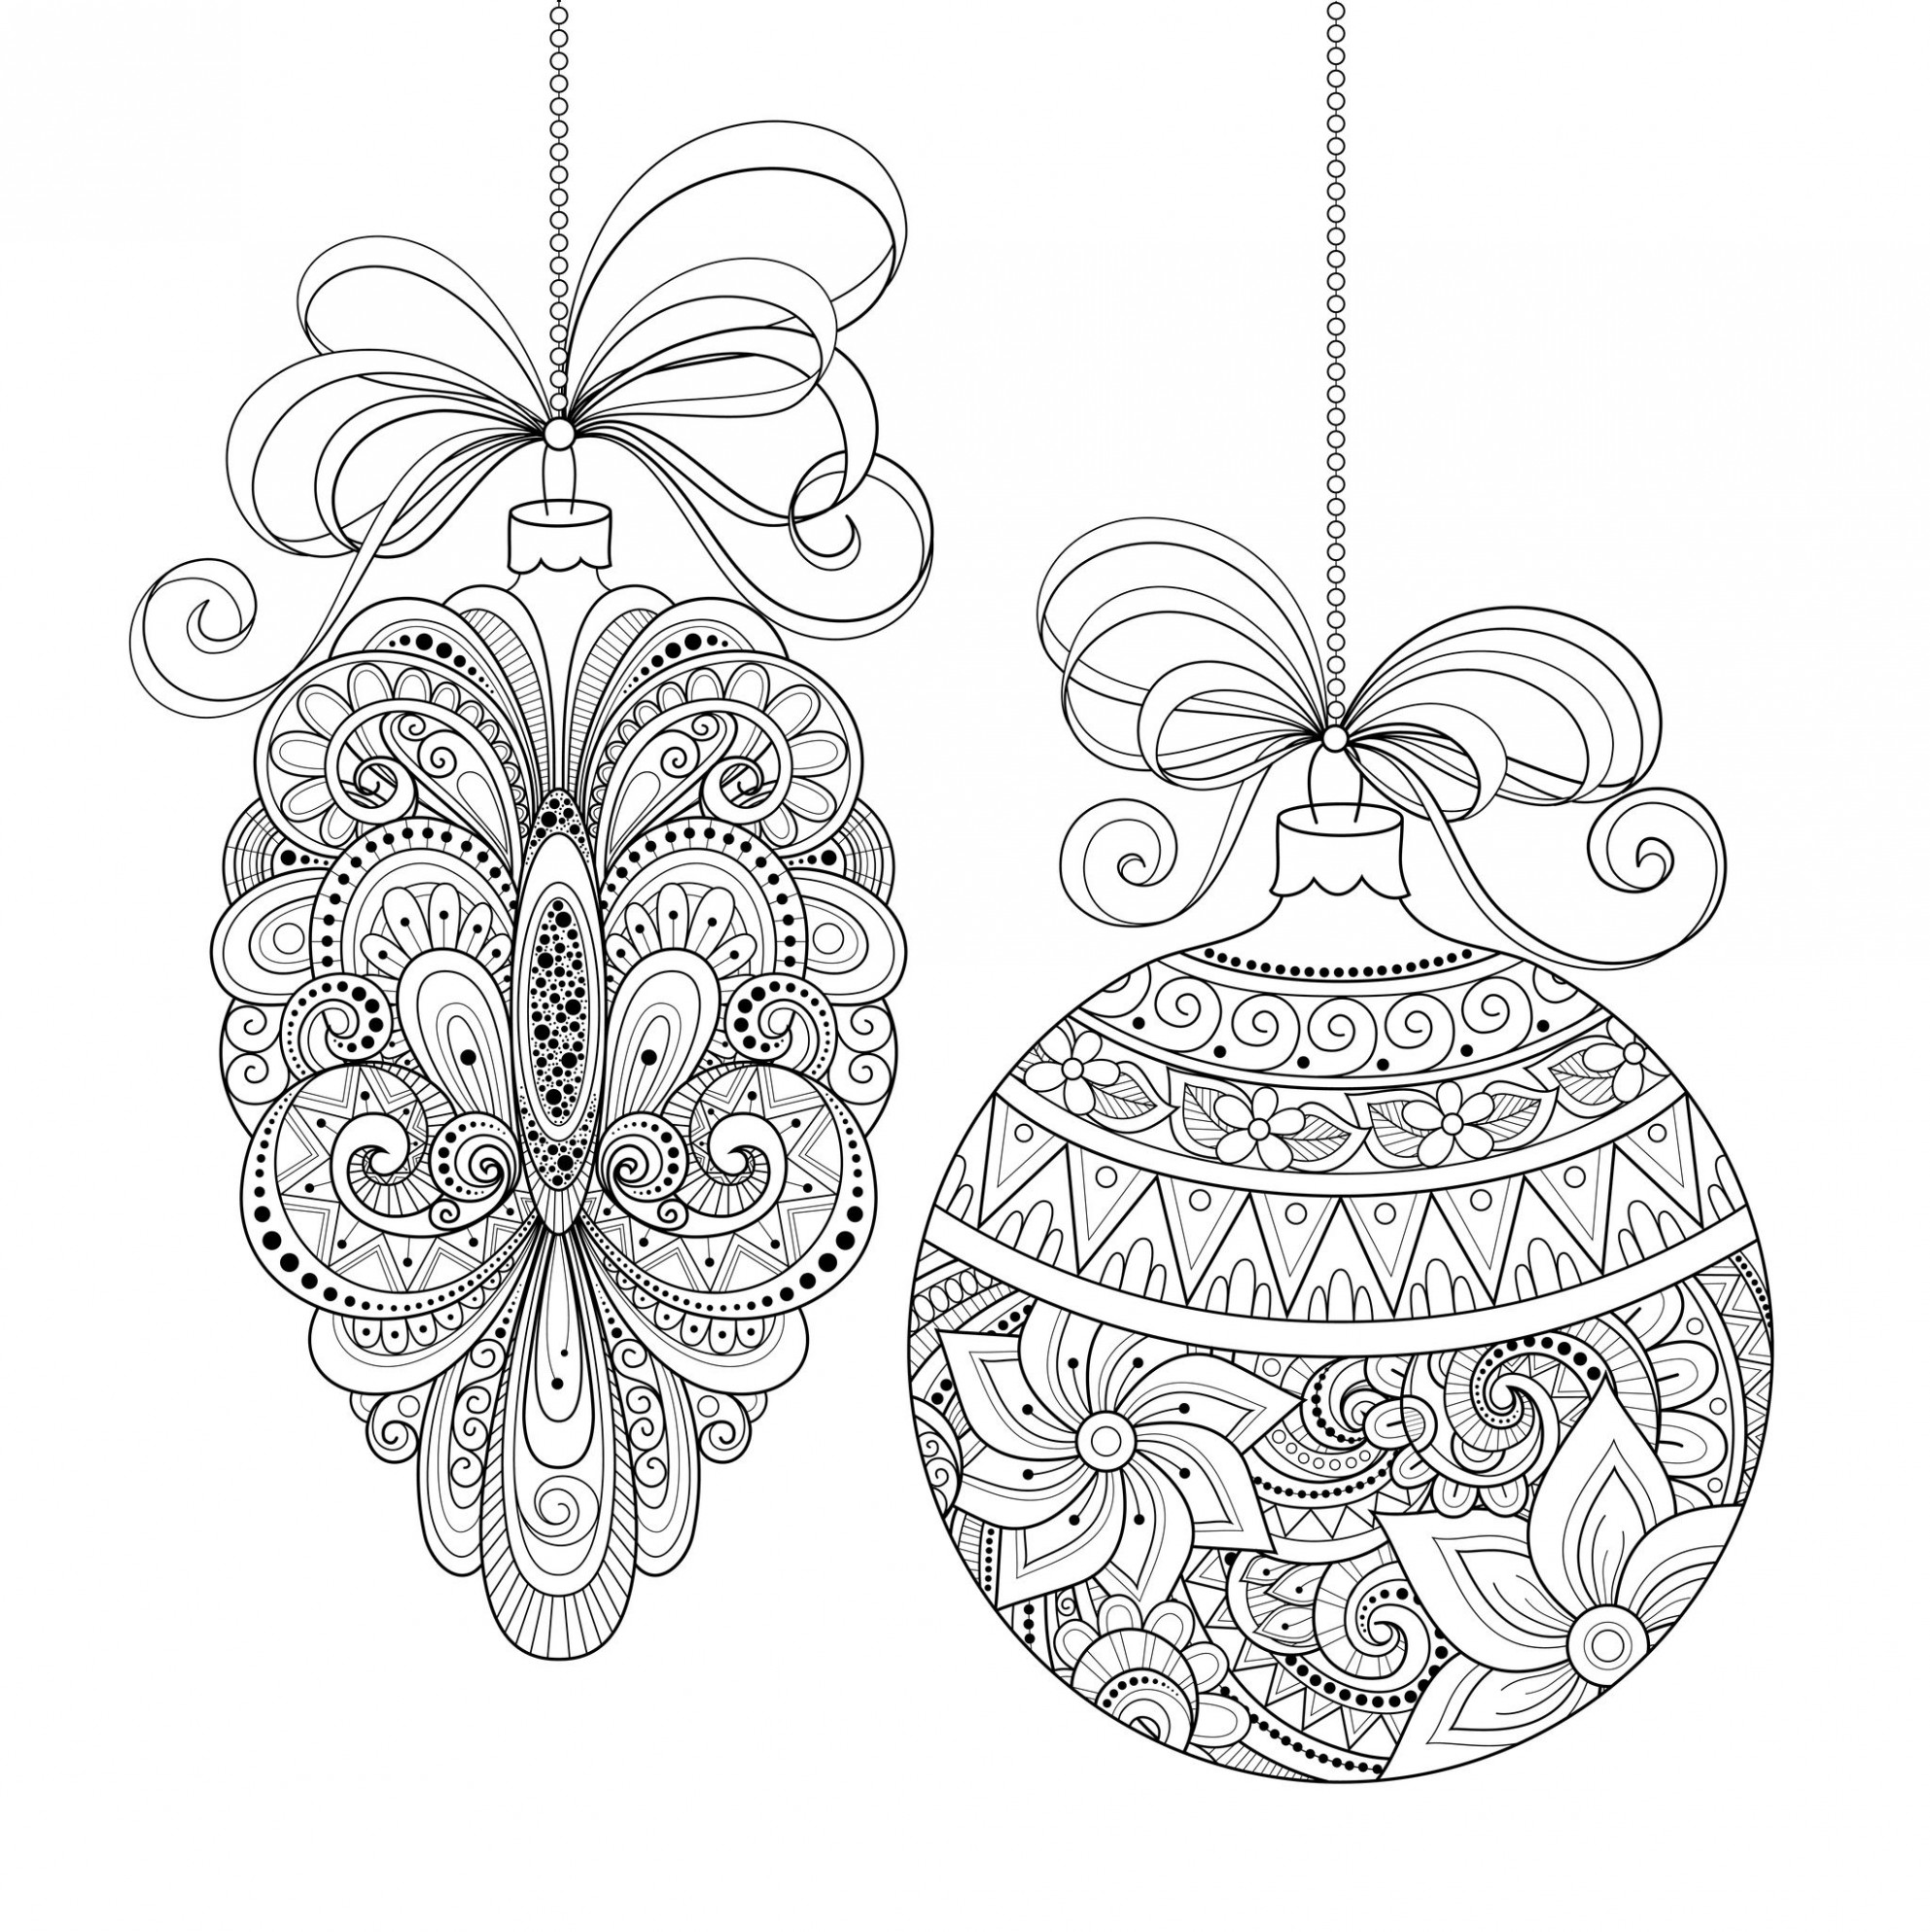 Christmas ornaments - Christmas Adult Coloring Pages